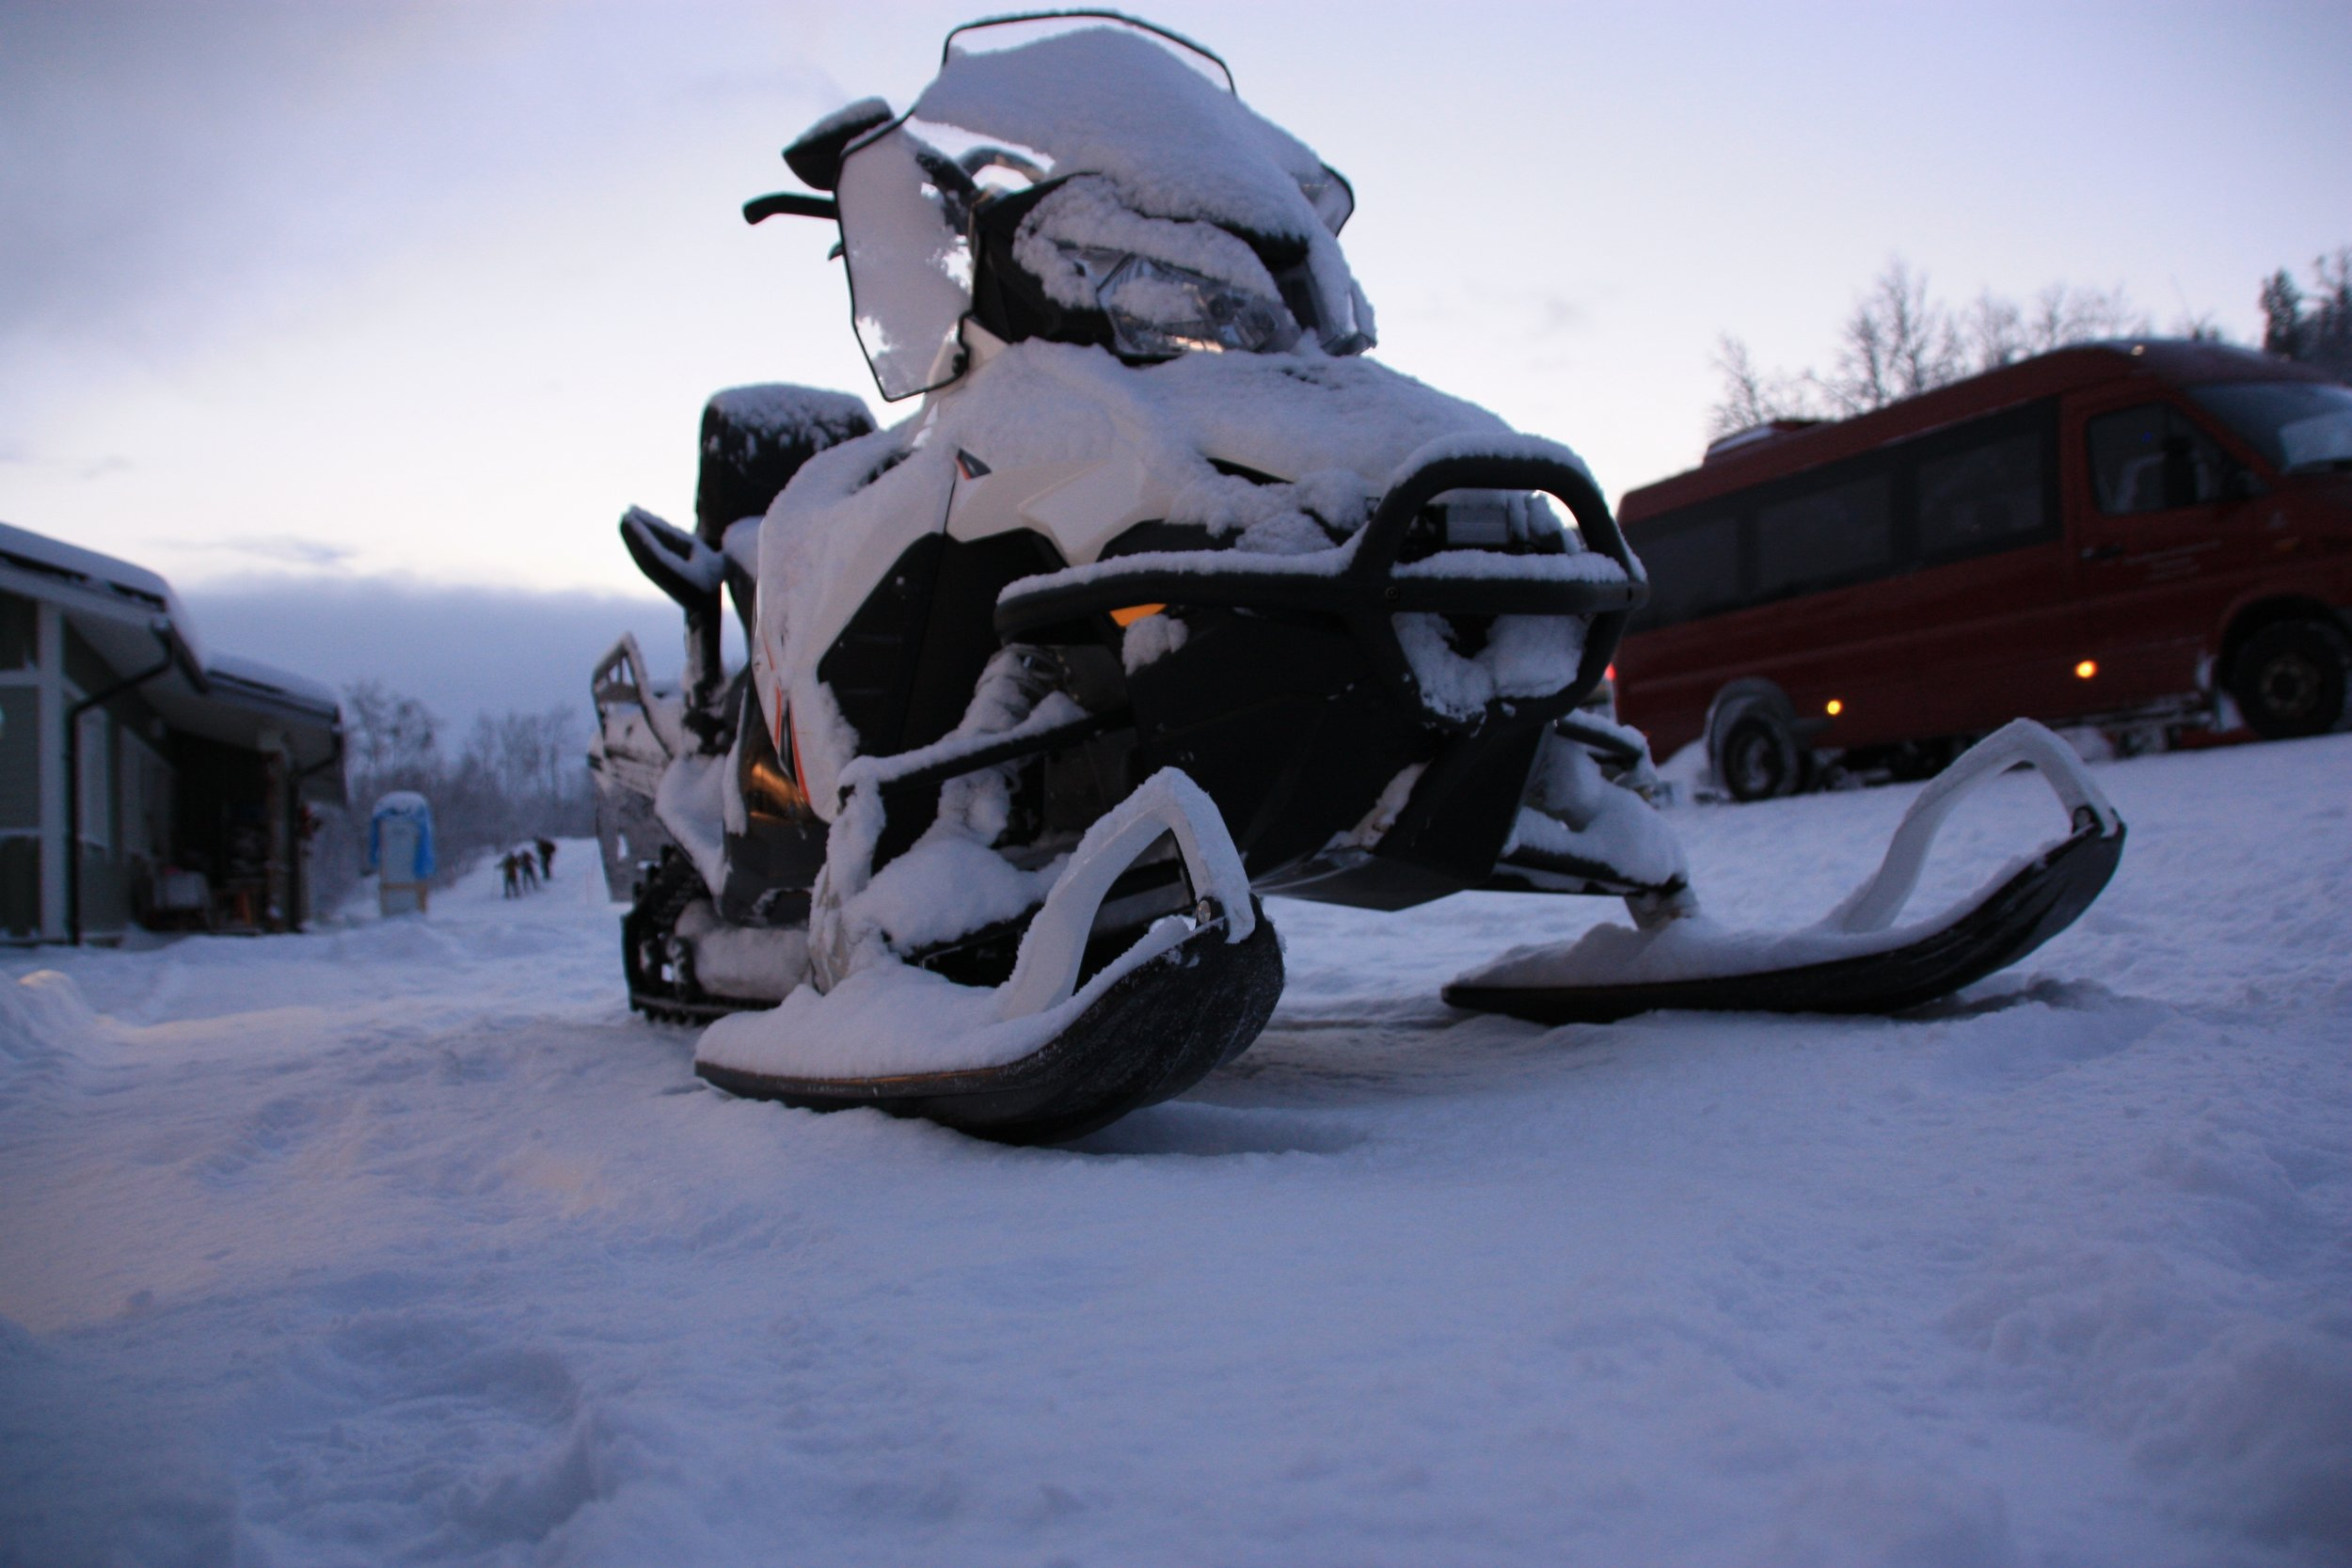 Cool ways to catch Northern Lights - Snowmobiling, Reindeer sled, etc.